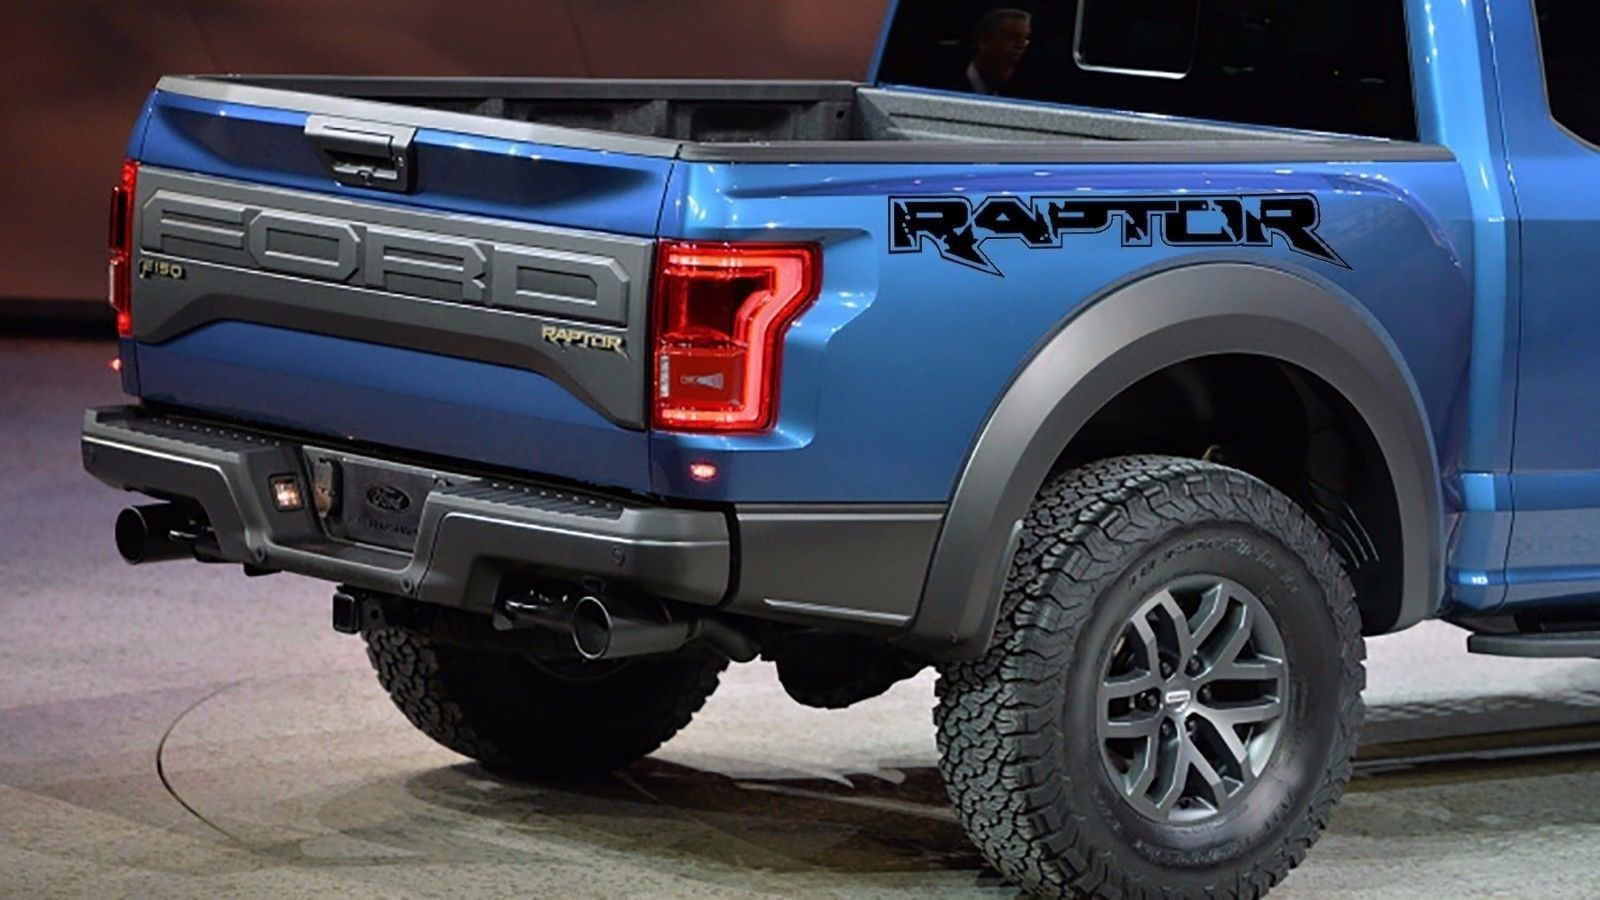 For 2pcs Truck Vinyl Decals For Ford Raptor F 150 Svt Graphics